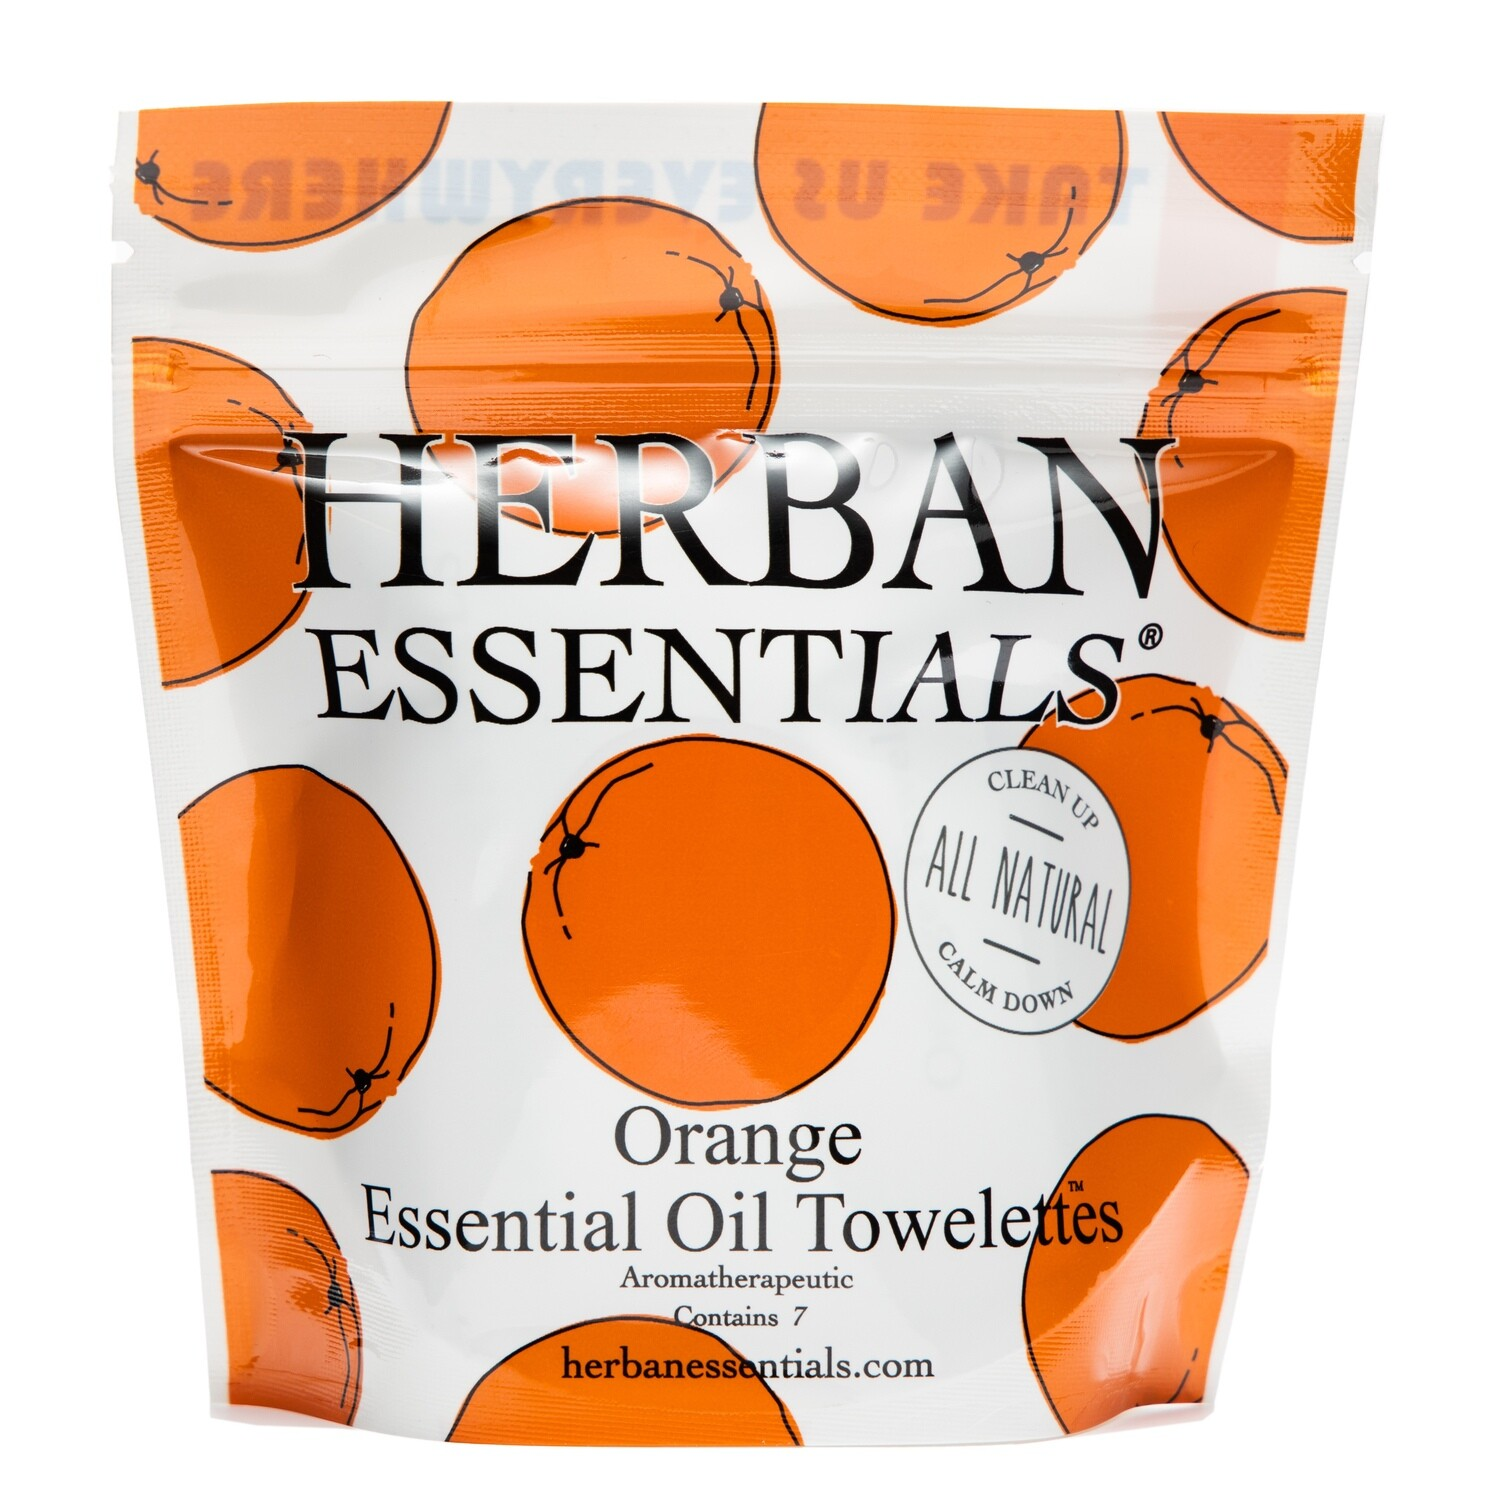 Orange - Clean your hands. Wipe devices like phones, computers, keyboards, etc. Inhale for refreshment and energy. Loved by kids, great for tiny hands.